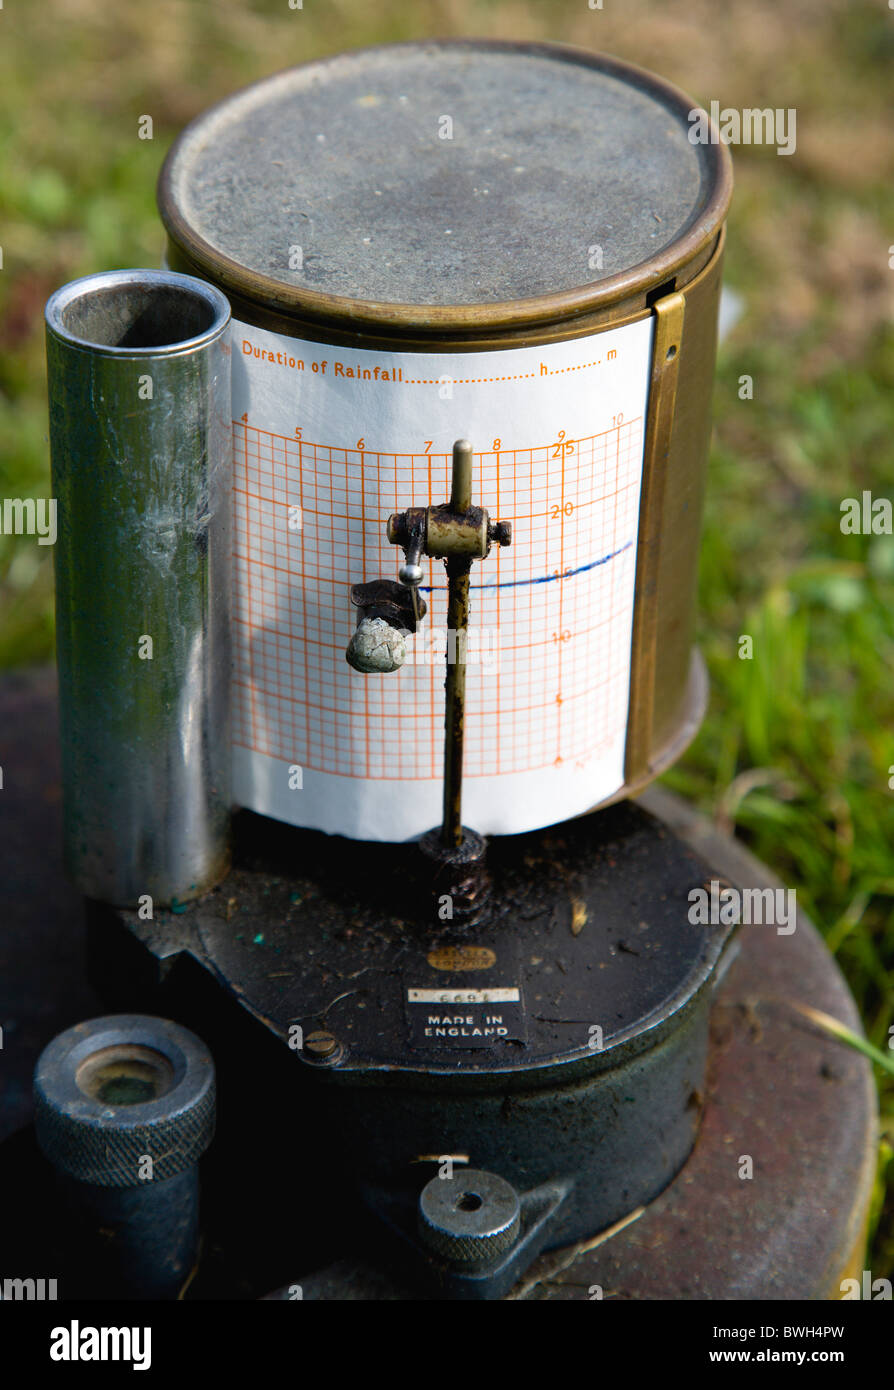 Climate Weather Station Measurement Tipping Bucket Rain Gauge Recorder with ink pen marking duration of rainfall - Stock Image